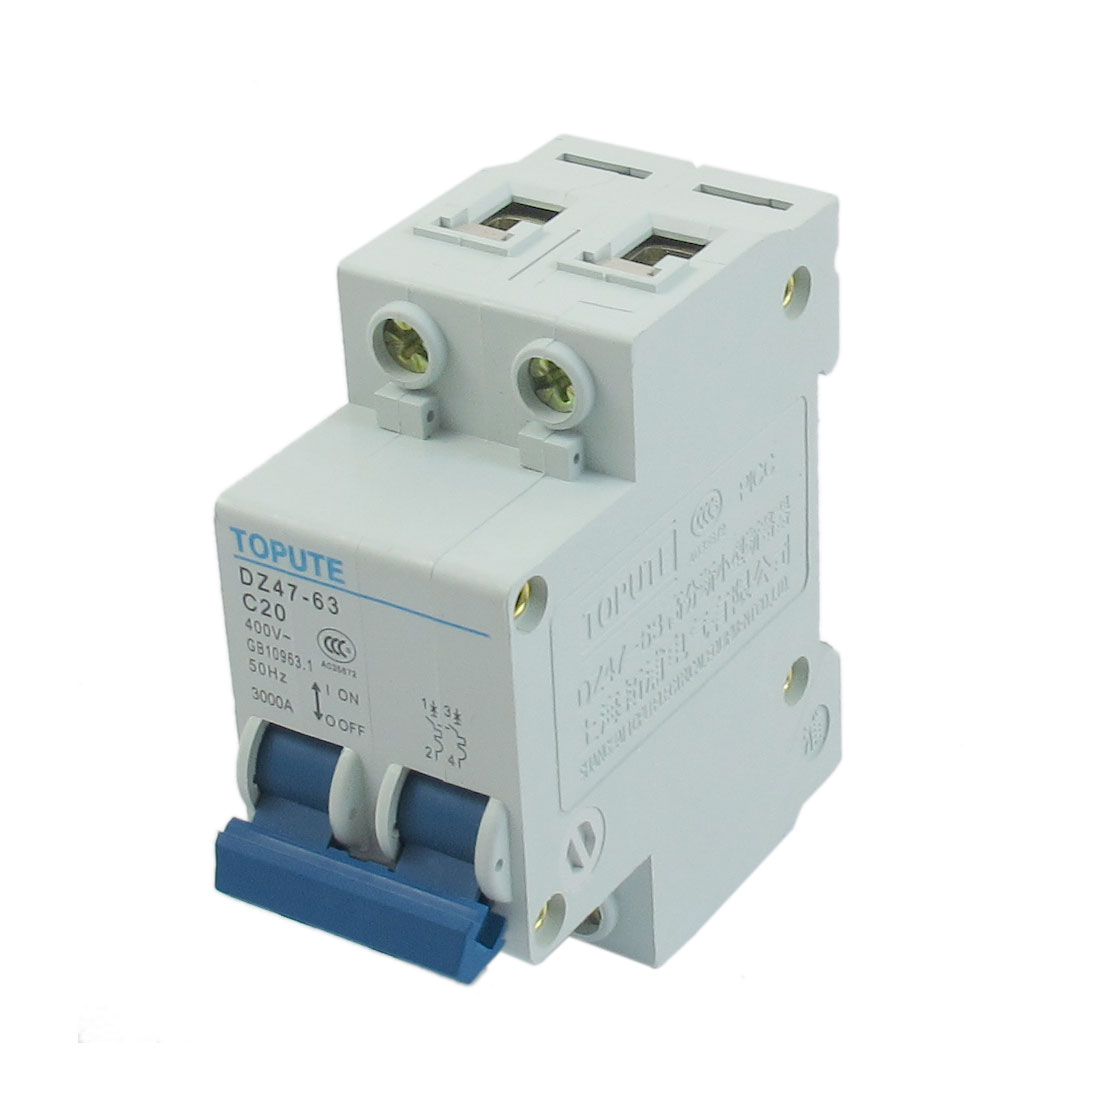 AC 400V 20A 2 Pole 3000A Breaking Capacity Overload Miniature Circuit Breaker